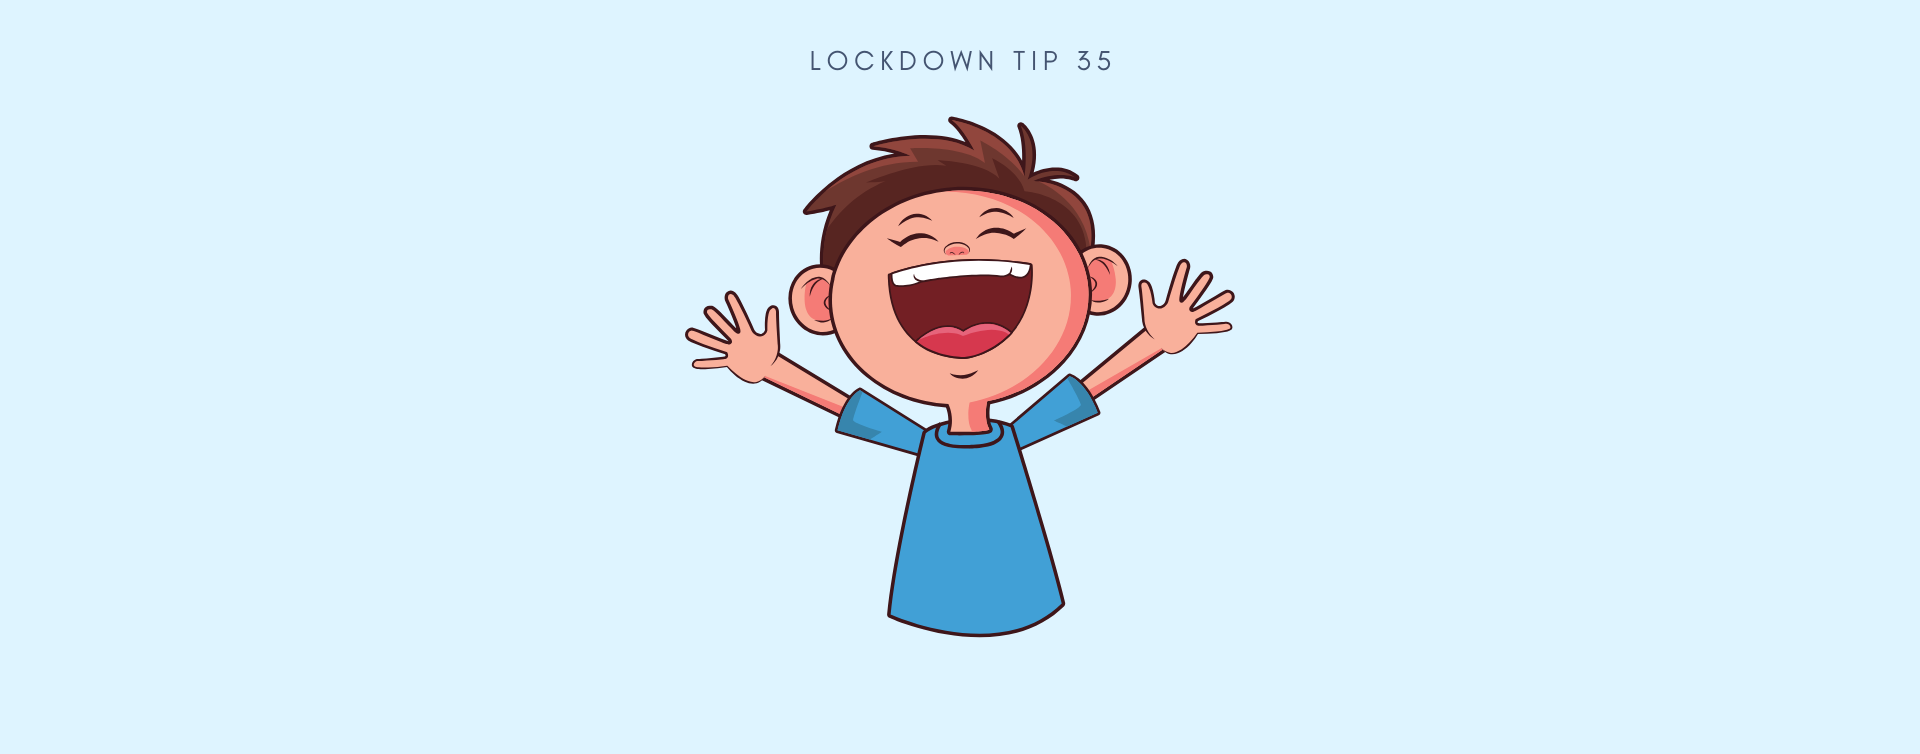 MCSA Lockdown Tip 35